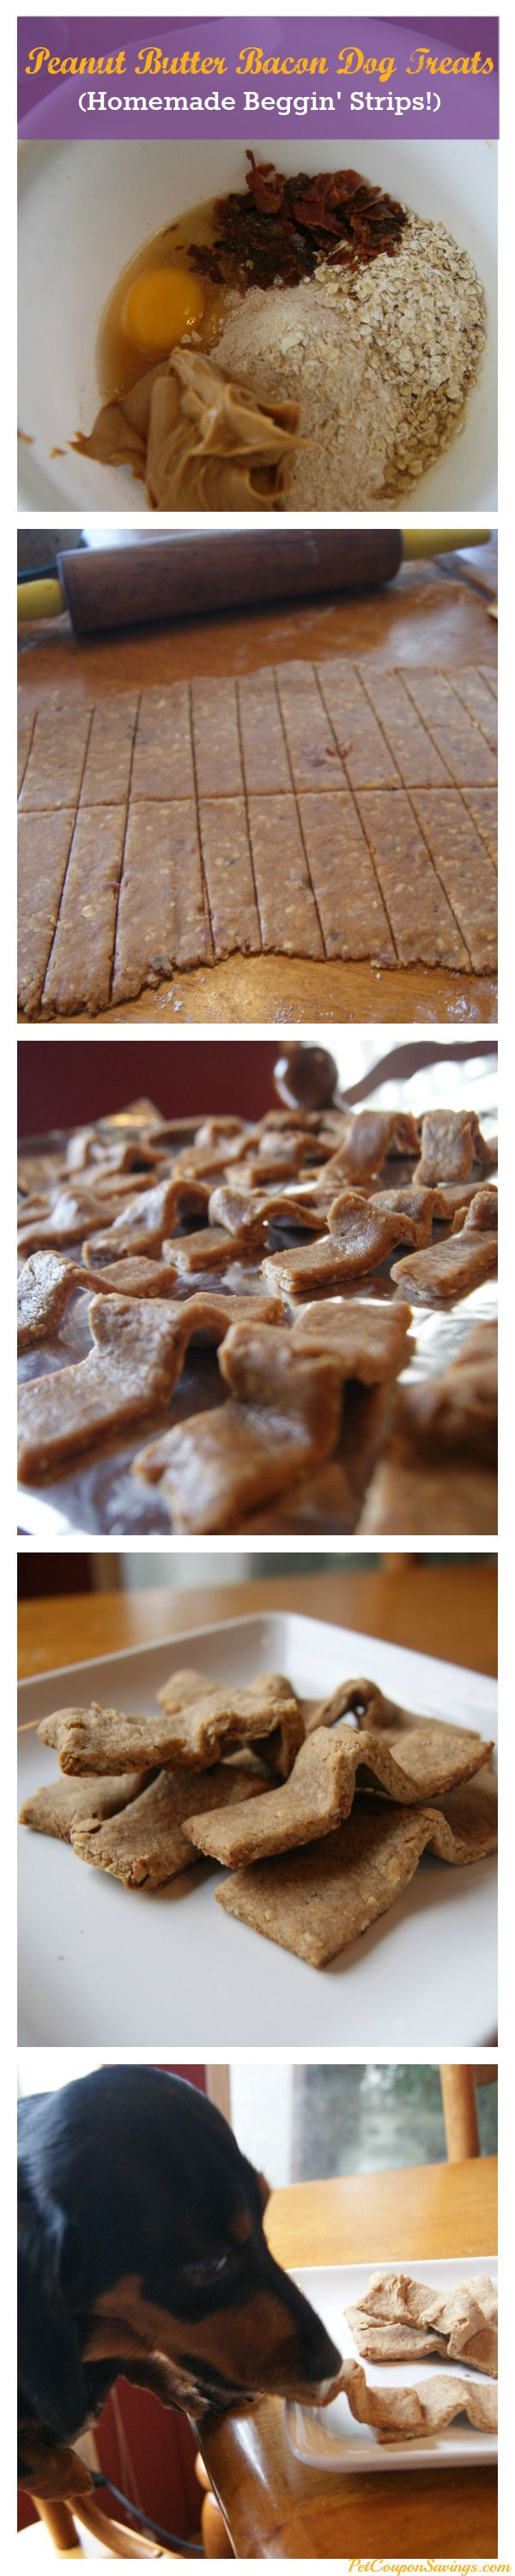 Peanut Butter Bacon Dog Treats (Homemade Beggin' Strips!)  3 pieces of bacon,  1 egg,  ½ cup peanut butter,  ¼ cup beef or chicken broth,  1 cup whole wheat flour,  ½ cup quick cook oats,  1 Tbsp. honey.